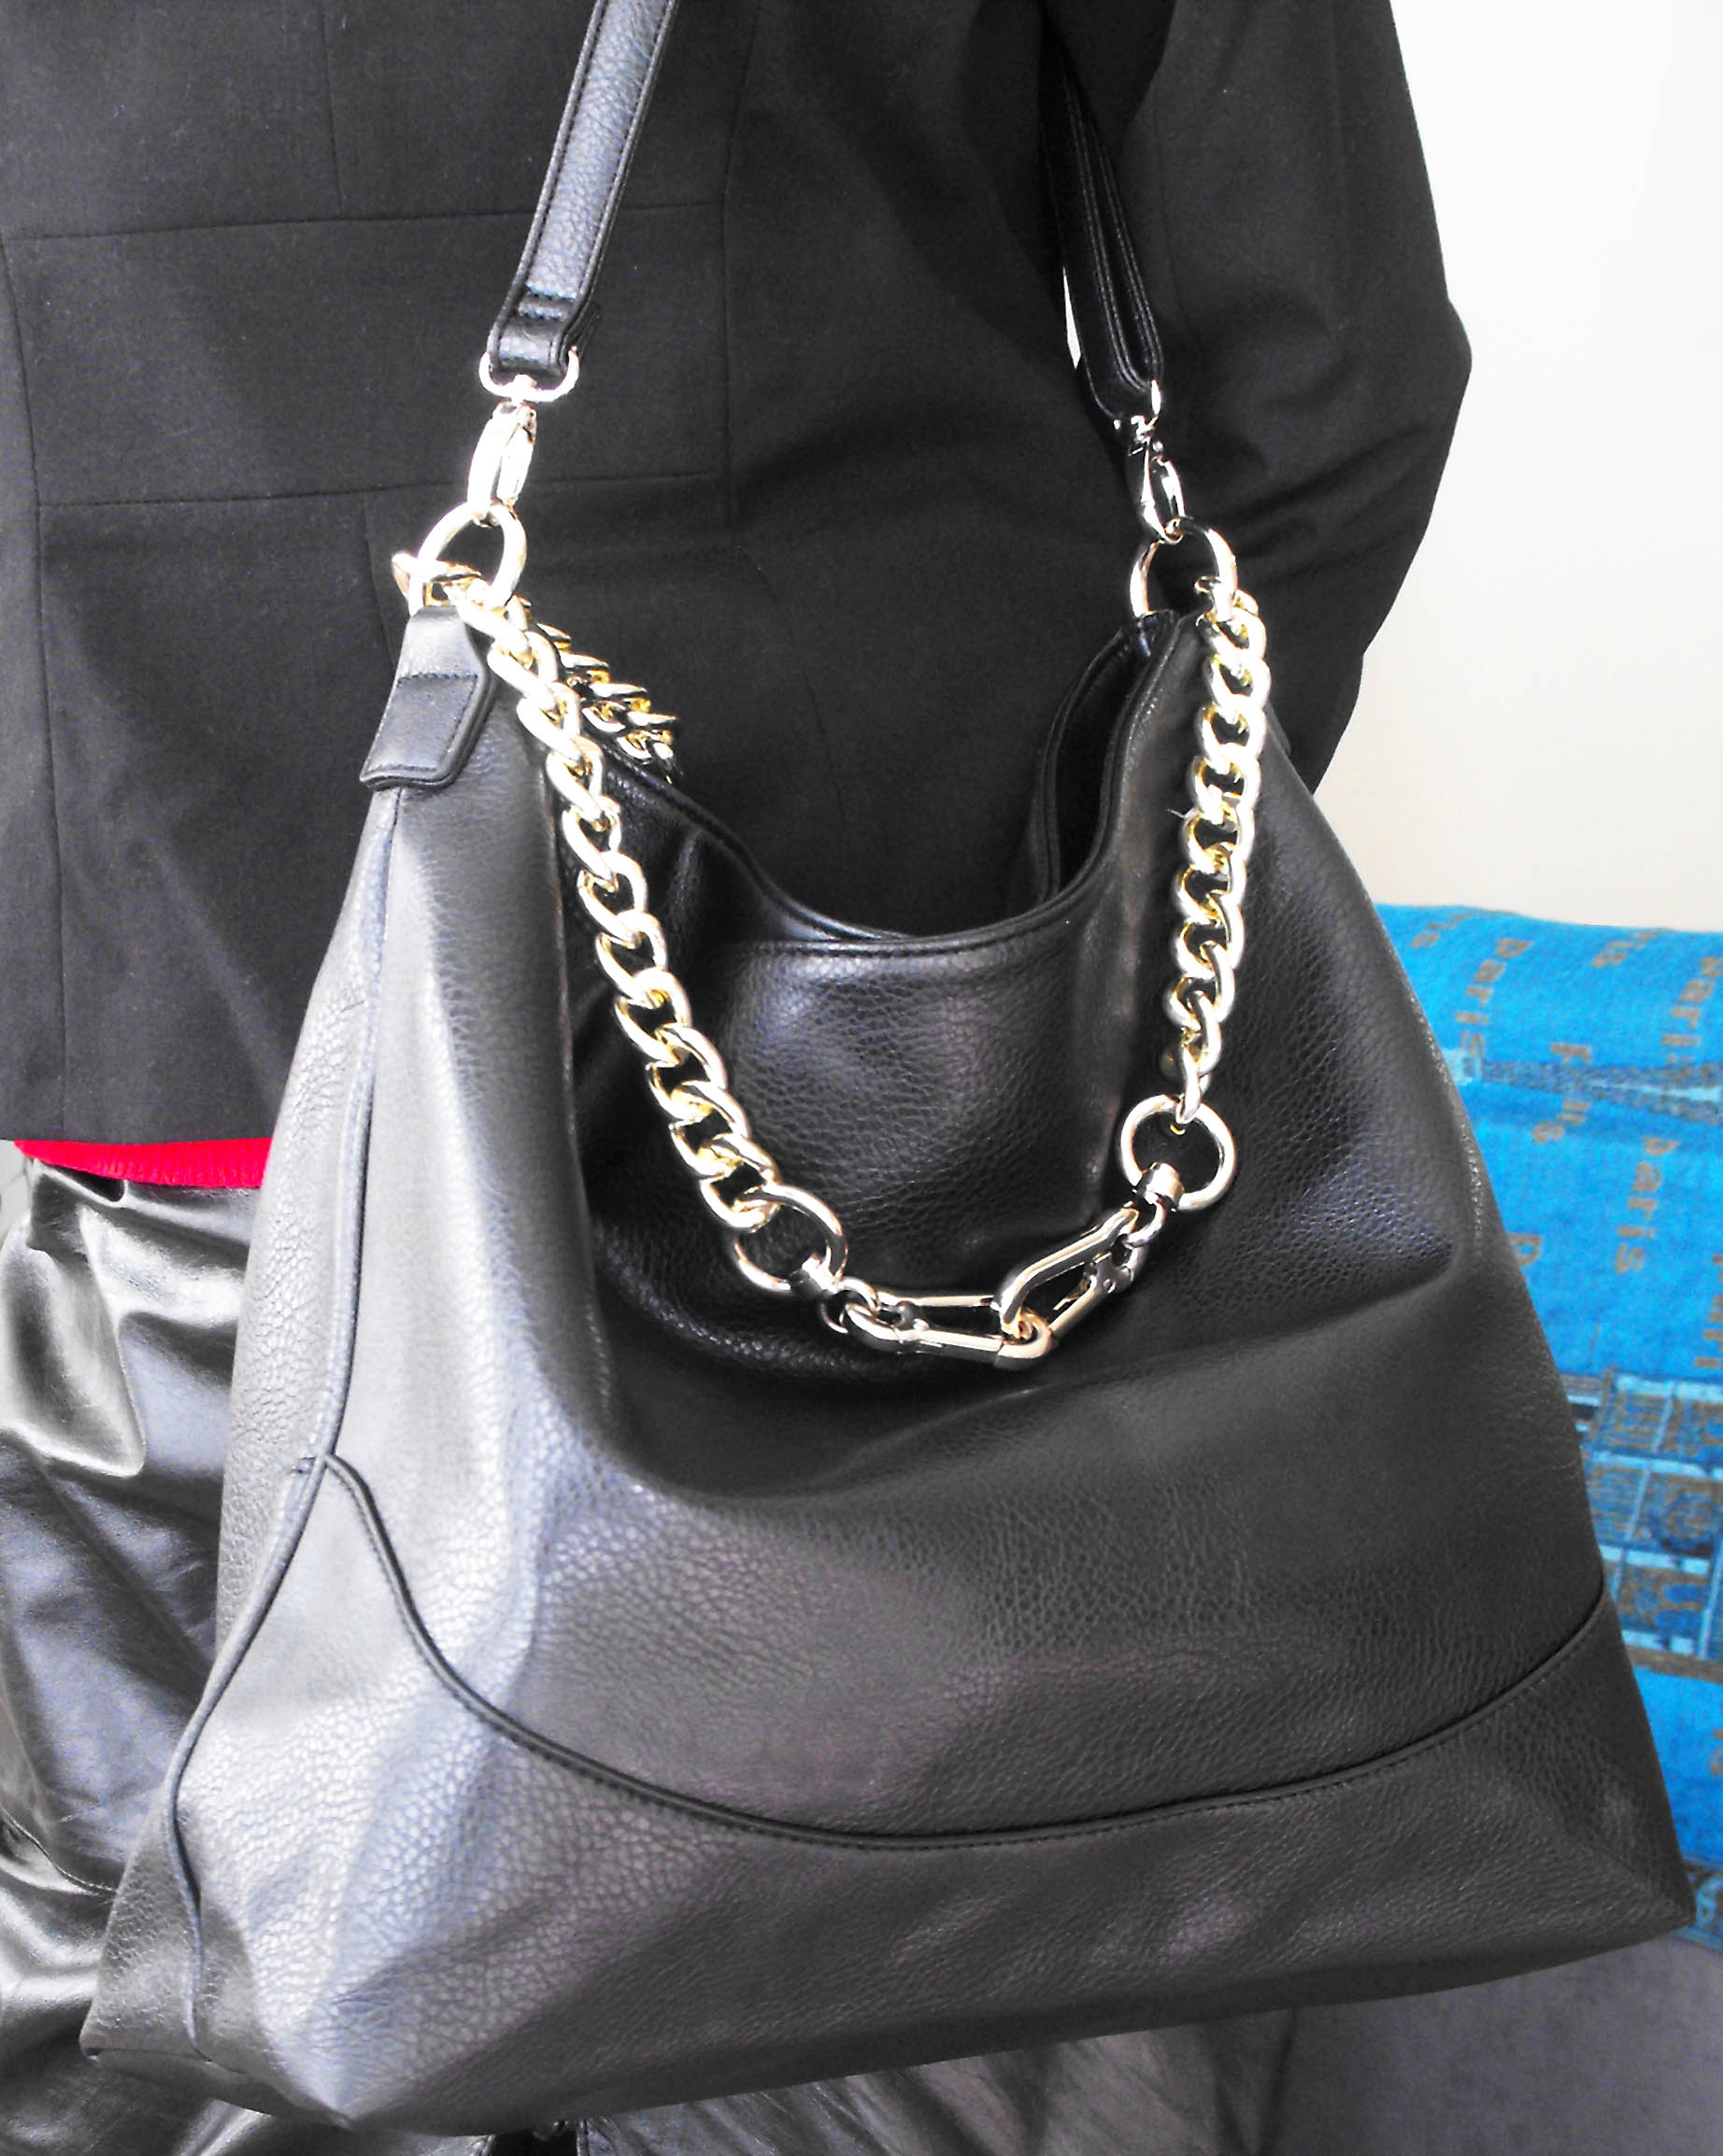 Justfab black faux leather Maxwell bag